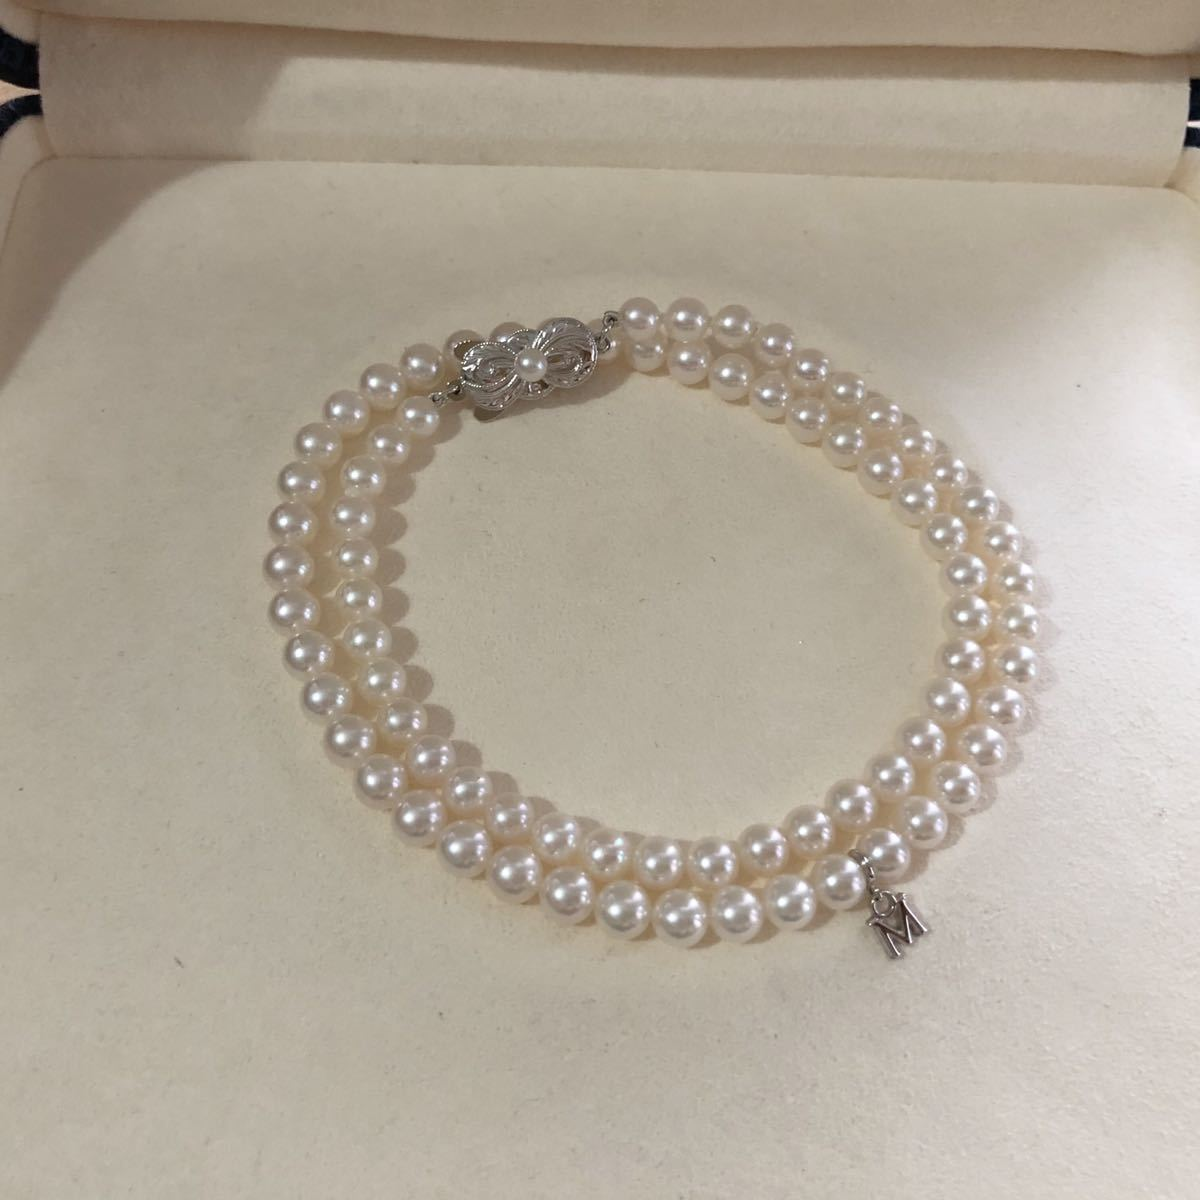 MIKIMOTO ミキモト アコヤパールネックレス SIL 5mm_画像2